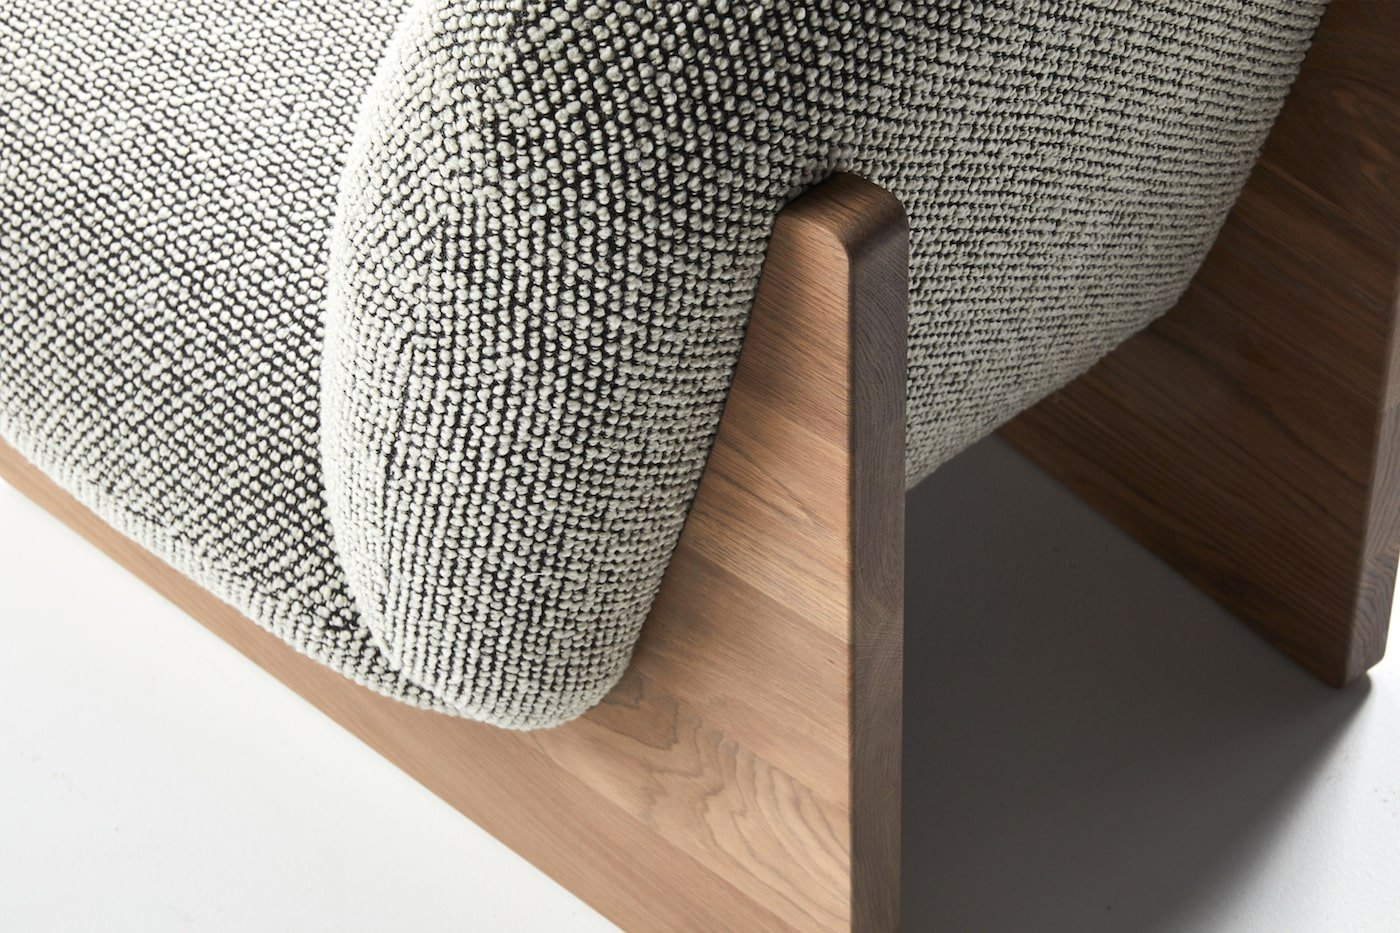 Ziggy armchair detail showing sustainable timber legs